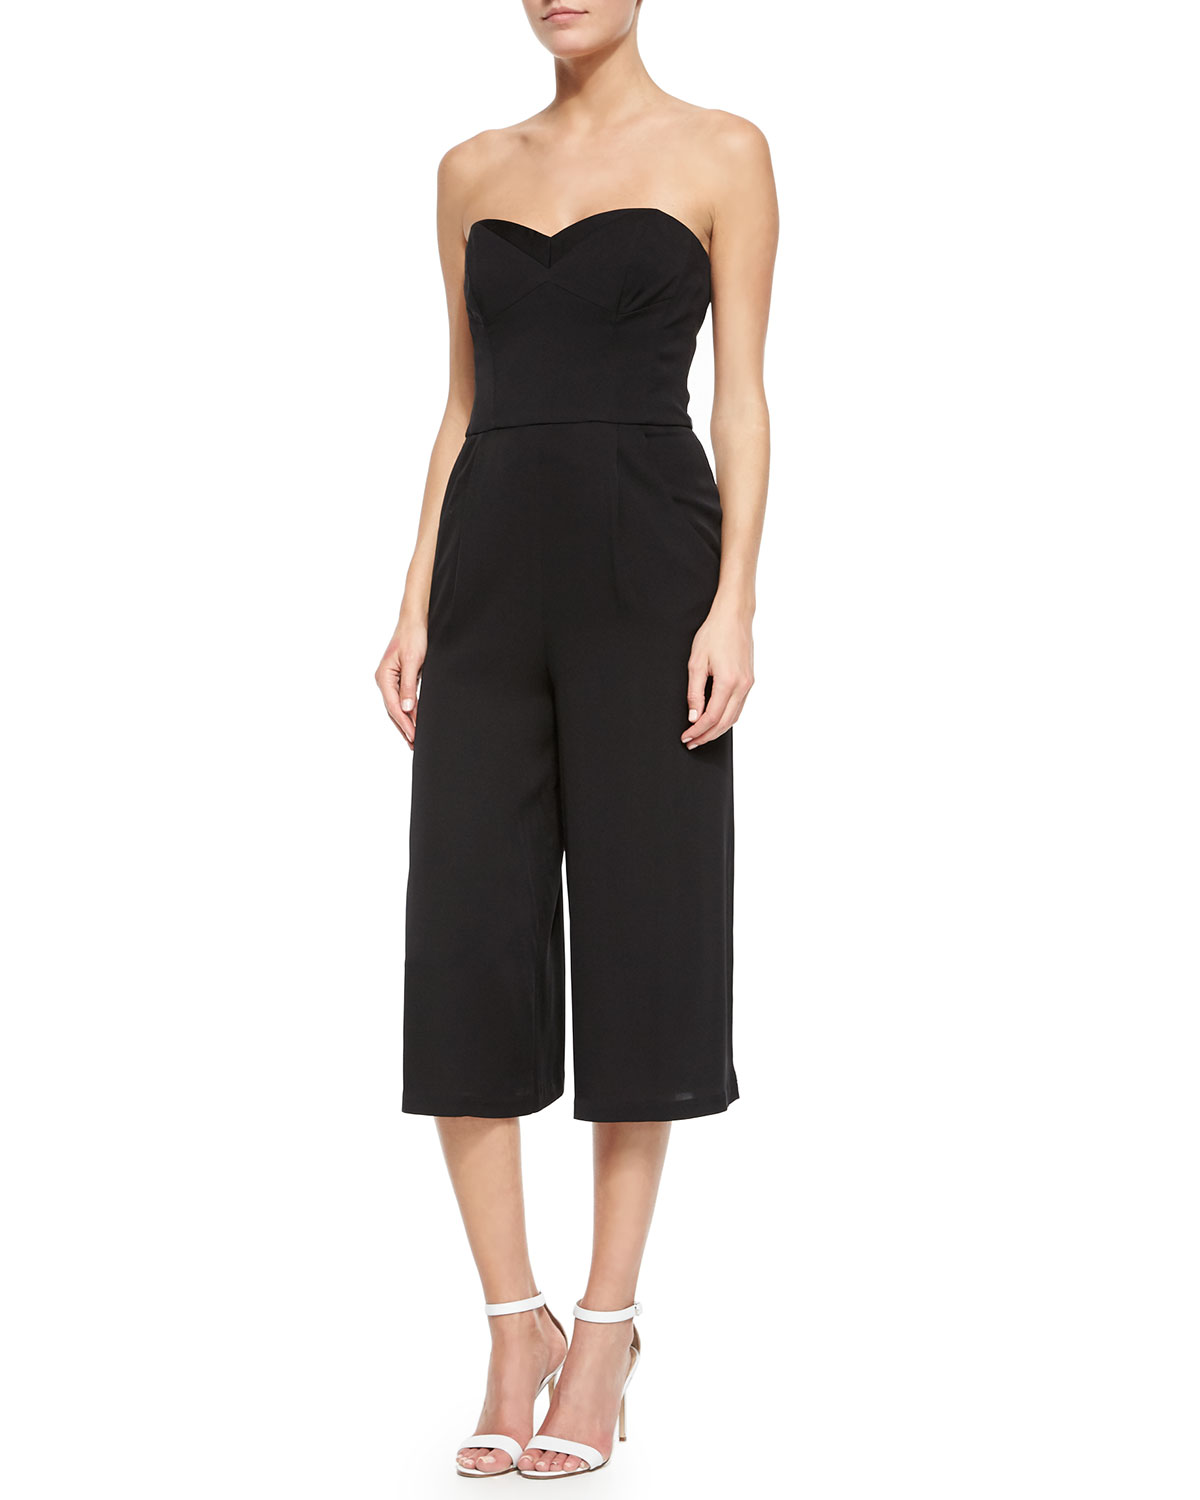 549fa83218a5 Milly Strapless Silk Stretch Jumpsuit